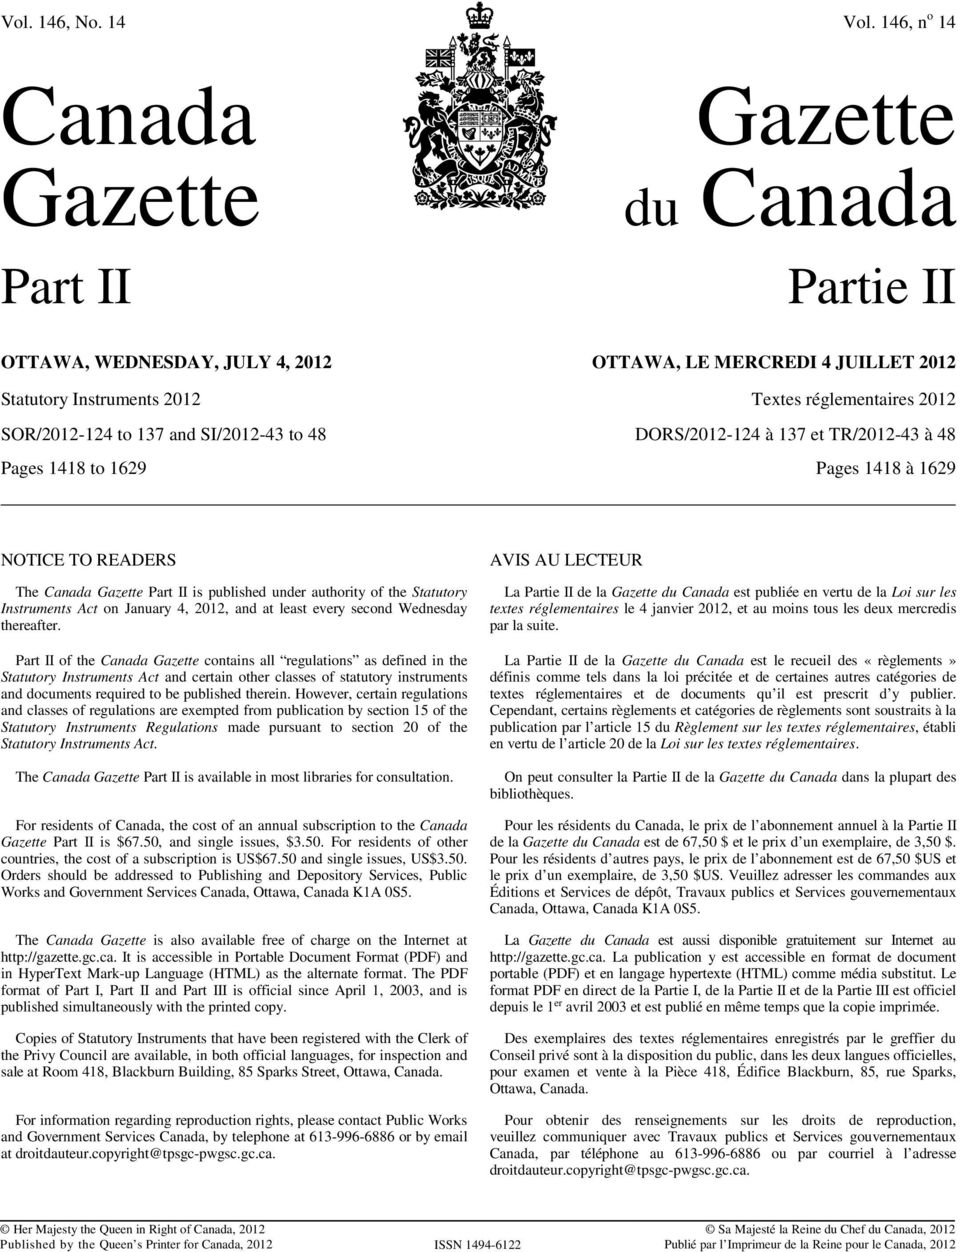 137 and SI/2012-43 to 48 DORS/2012-124 à 137 et TR/2012-43 à 48 Pages 1418 to 1629 Pages 1418 à 1629 NOTICE TO READERS The Canada Gazette Part II is published under authority of the Statutory